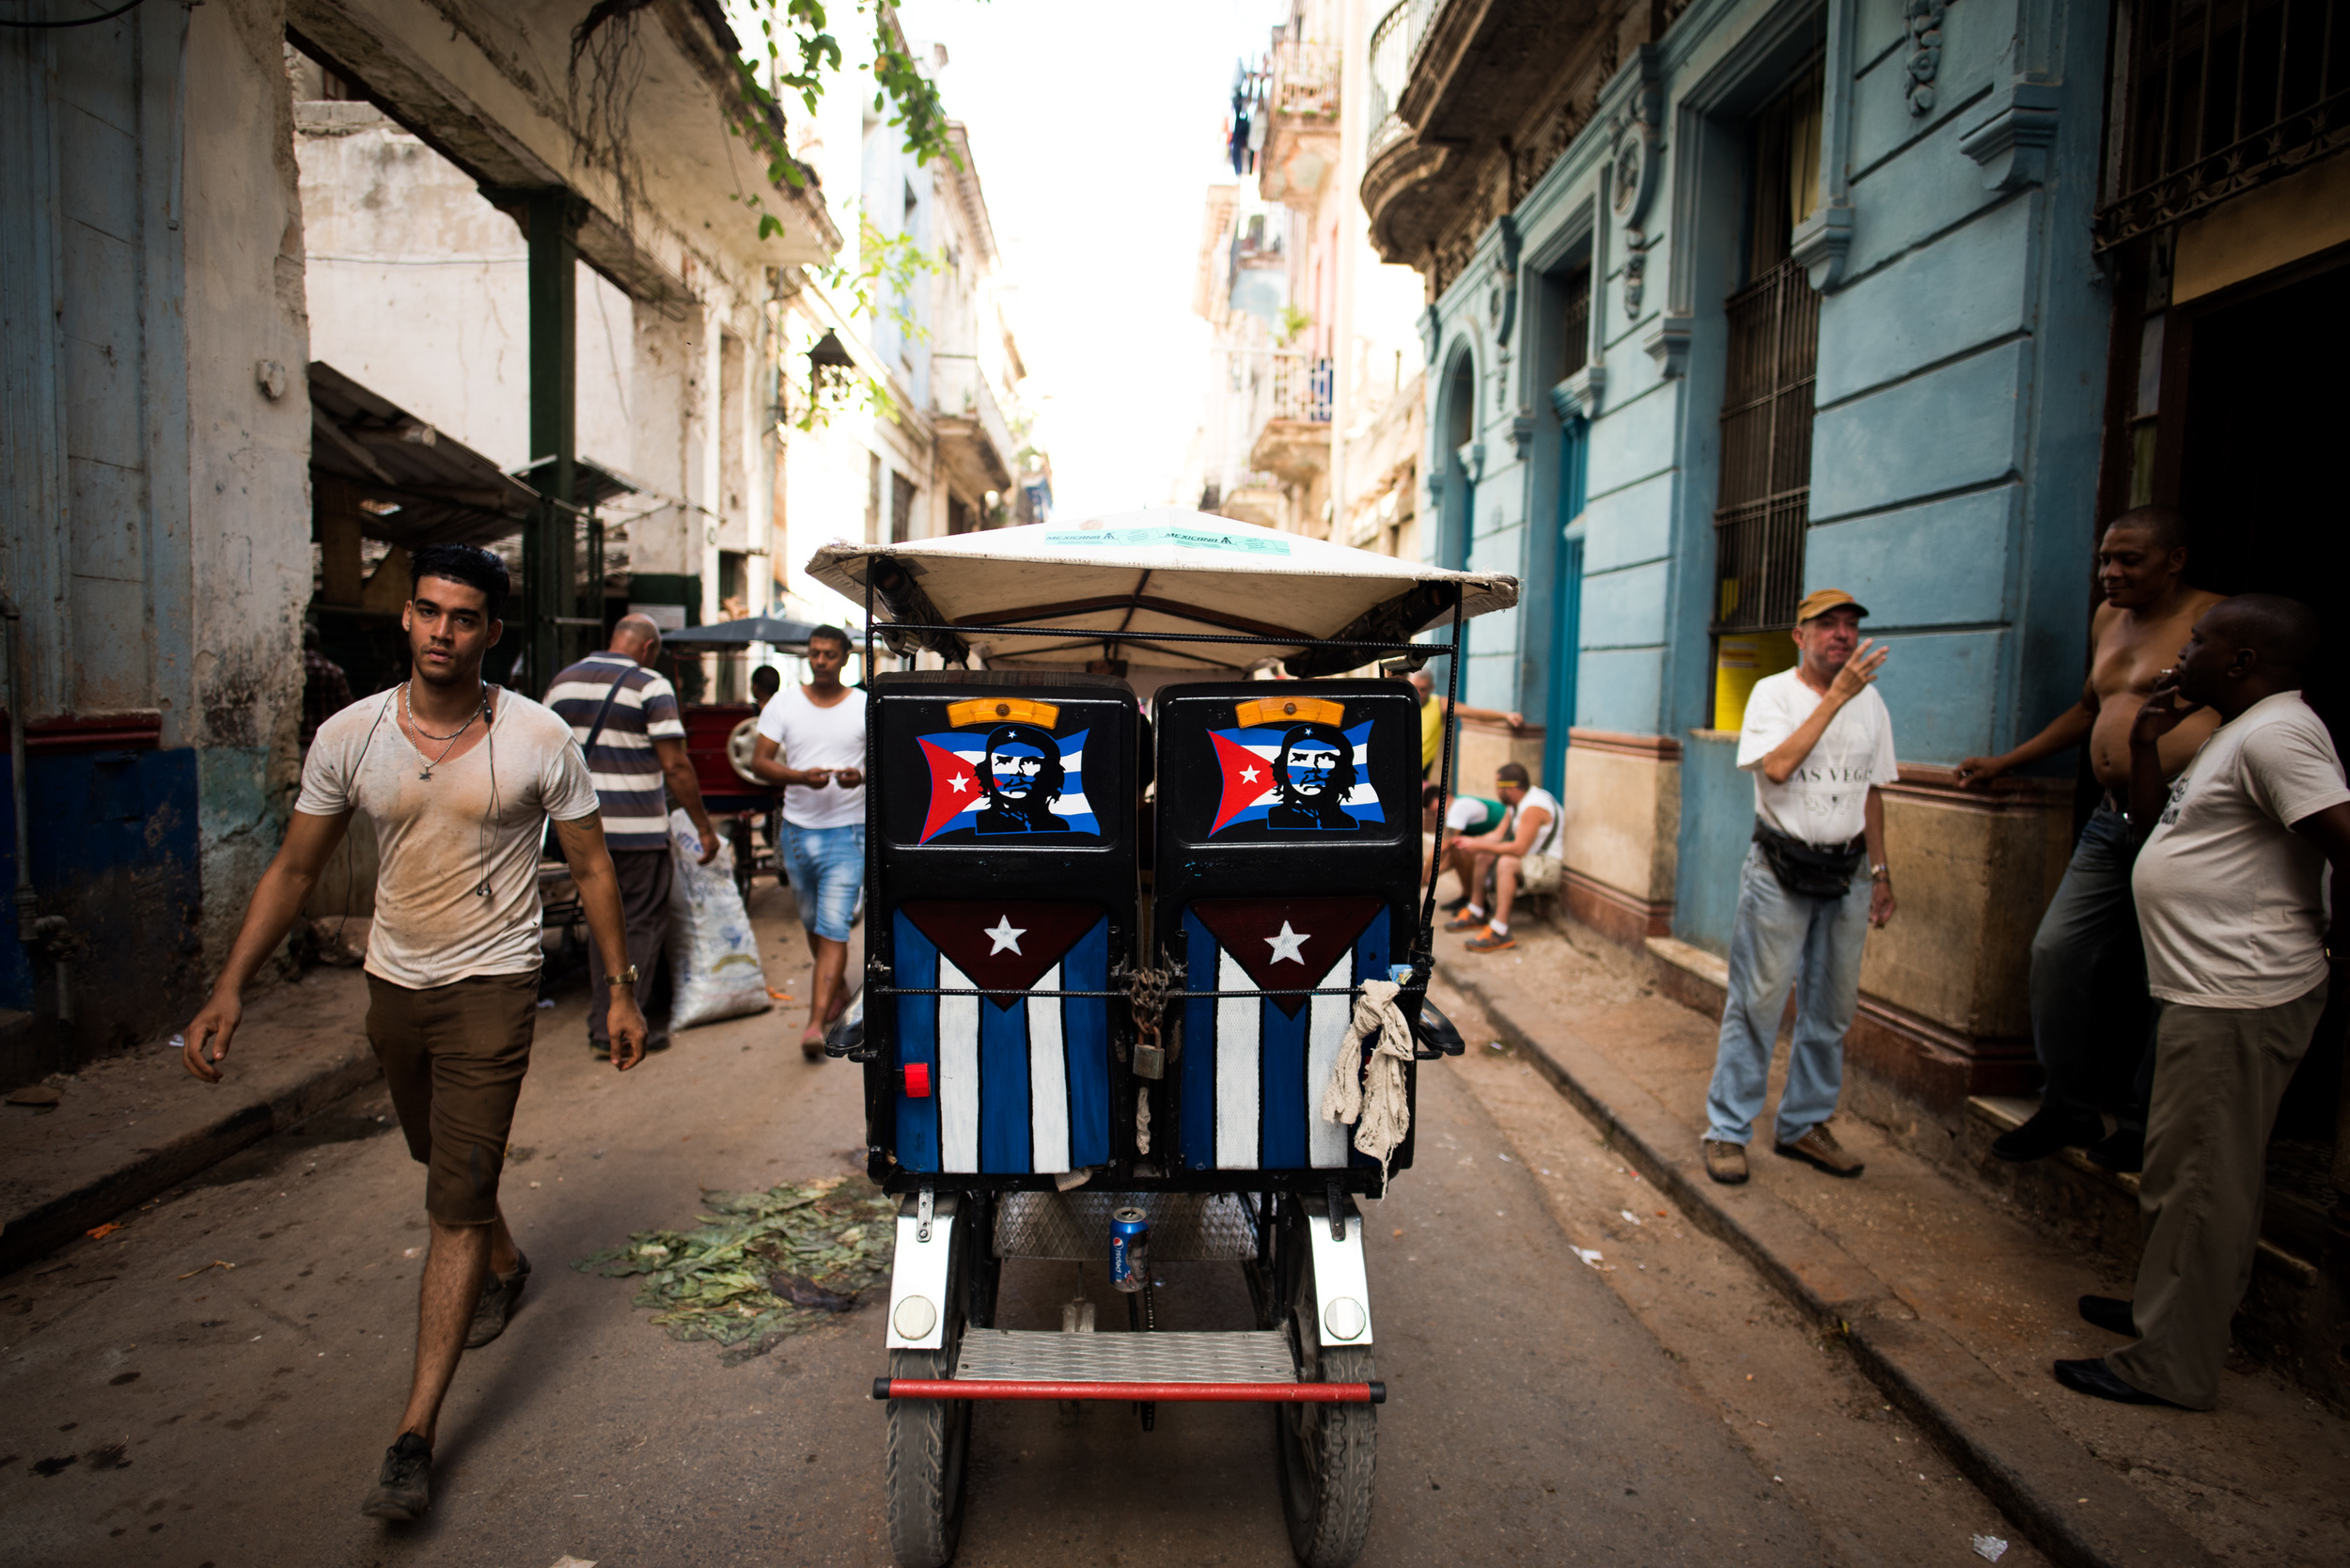 A pedicab with Cuban Flags and depictions of Che Guevara makes its way through a narrow street in Old Havana.